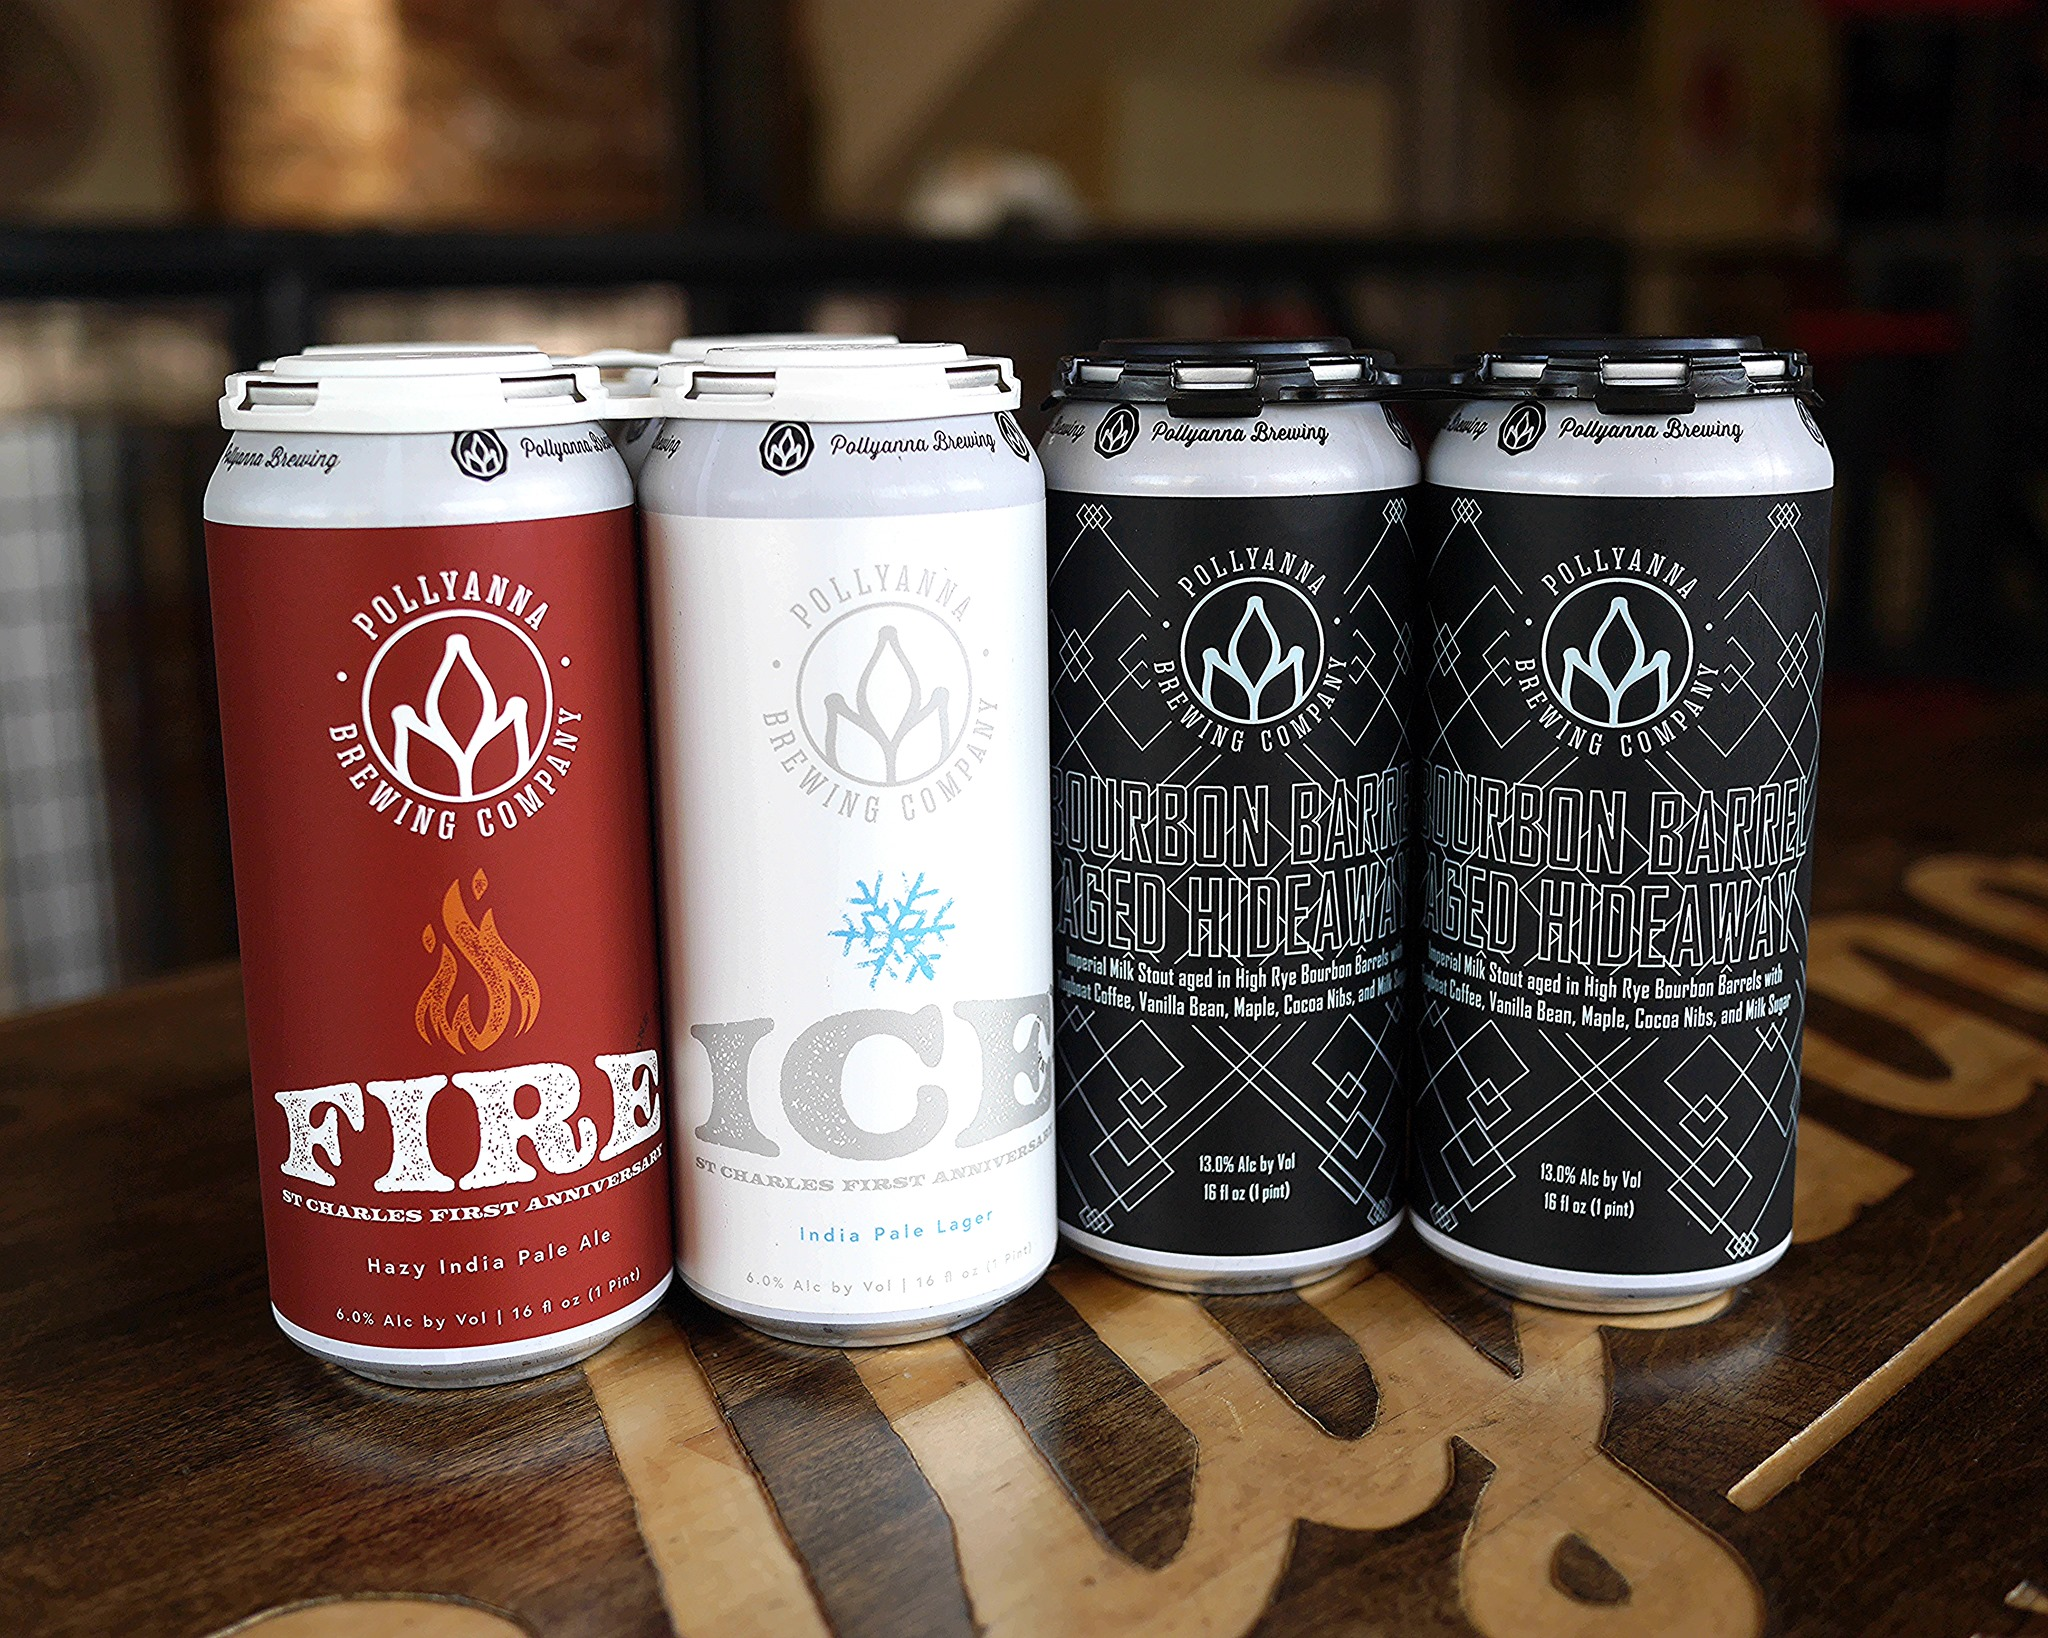 6 cans from Pollyanna Brewing (two of Fire, two of Ice, and two of Bourbon Barrel Aged Hideaway)